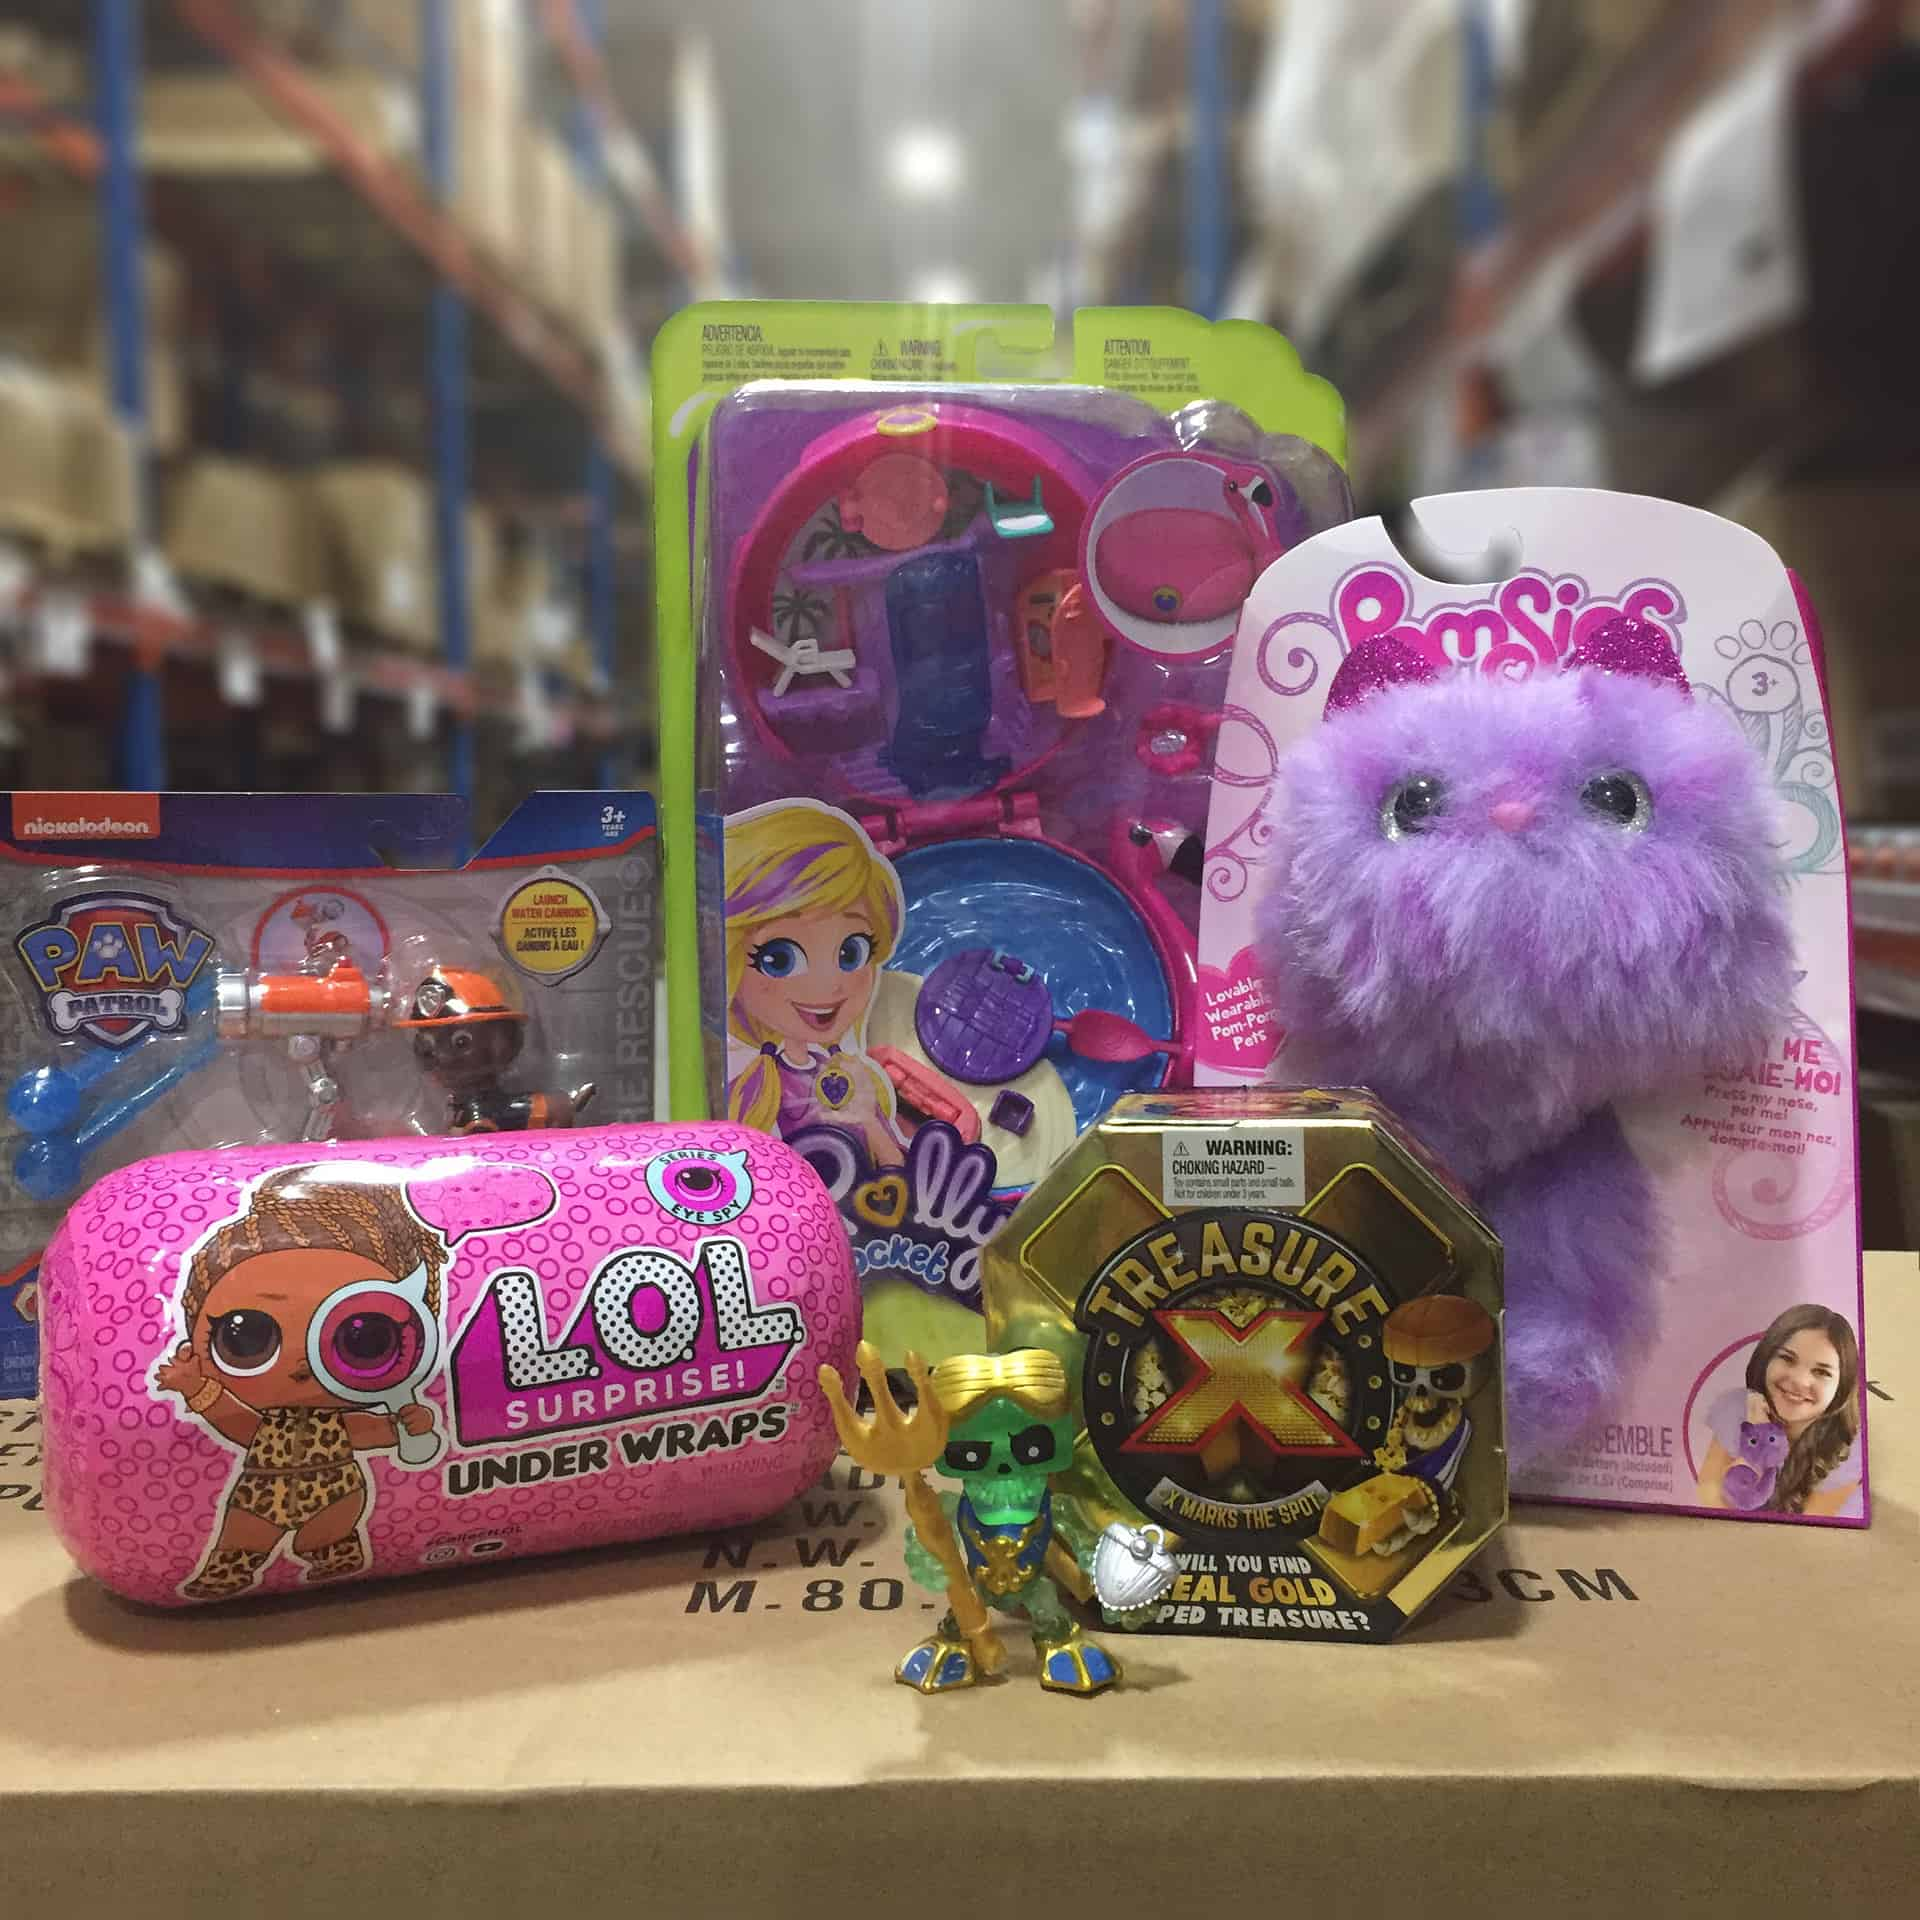 Finish Your Christmas Shopping at the Massive Toy Blowout Sale 12/6 to 12/9